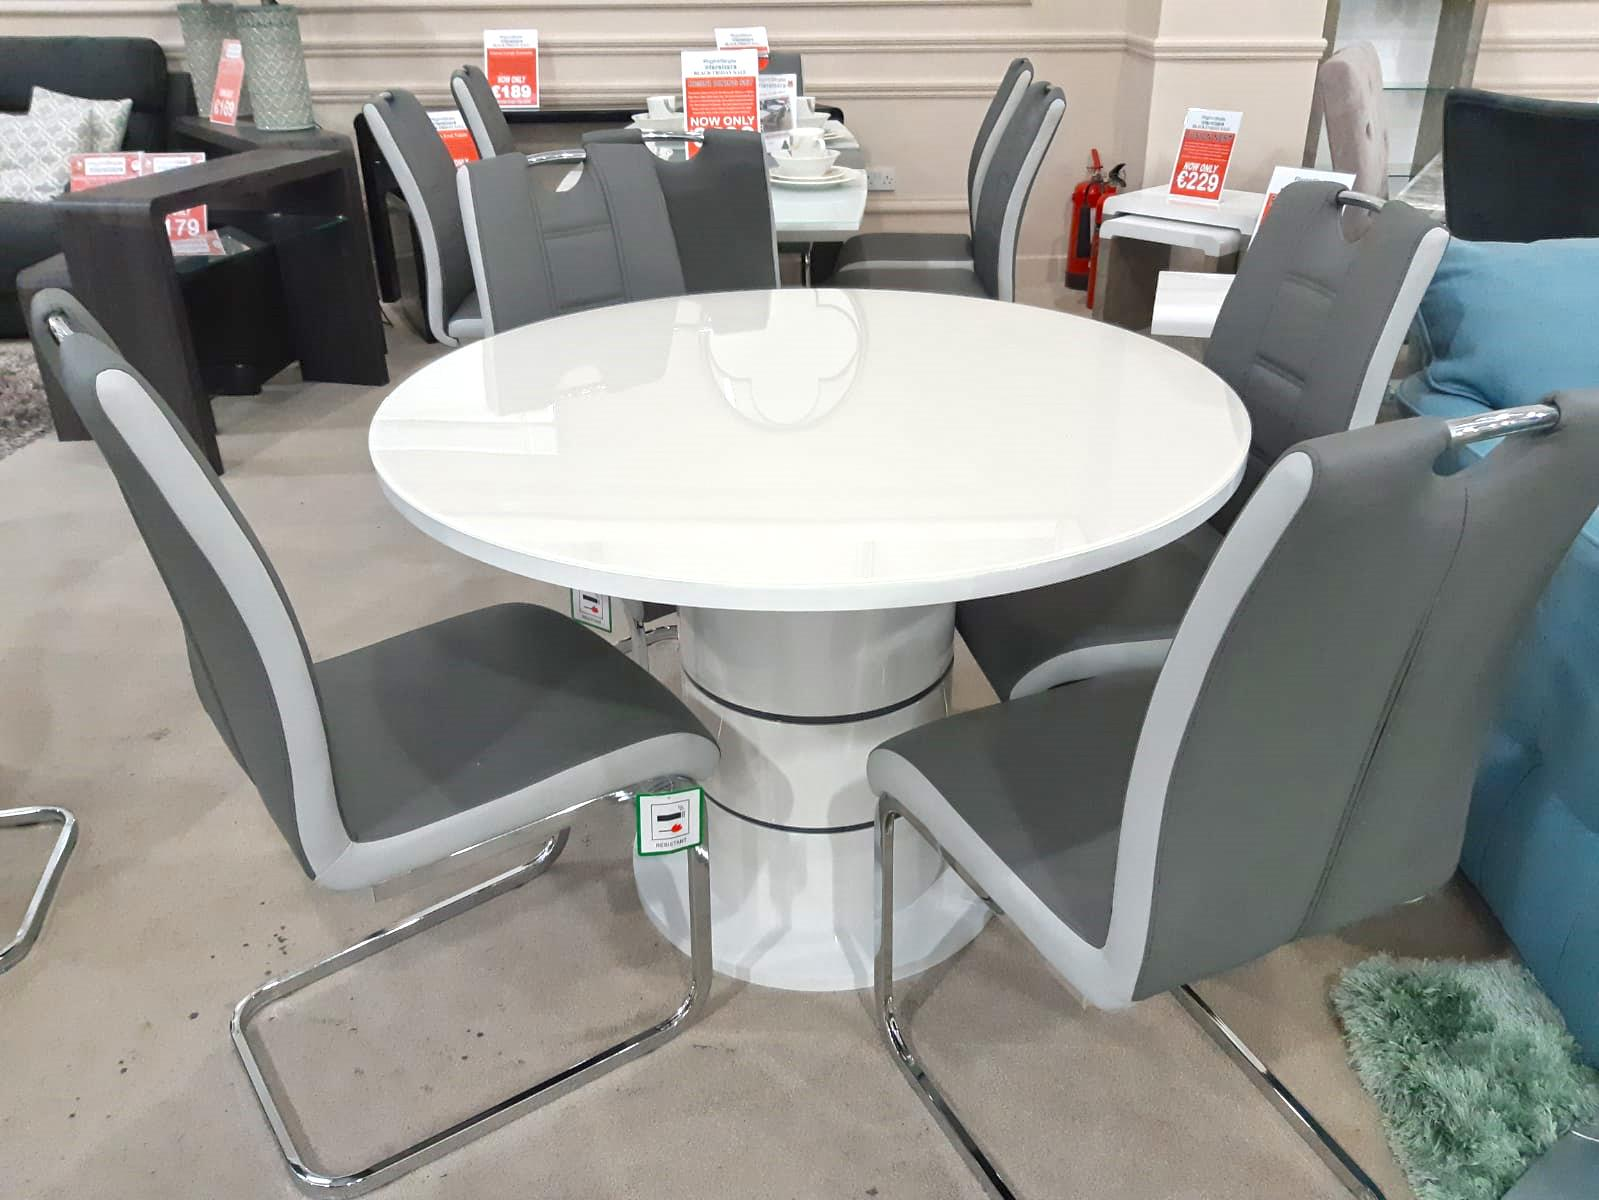 Rimini White High Gloss Dining Set Dublin Ireland Furniture Store Rightstyle